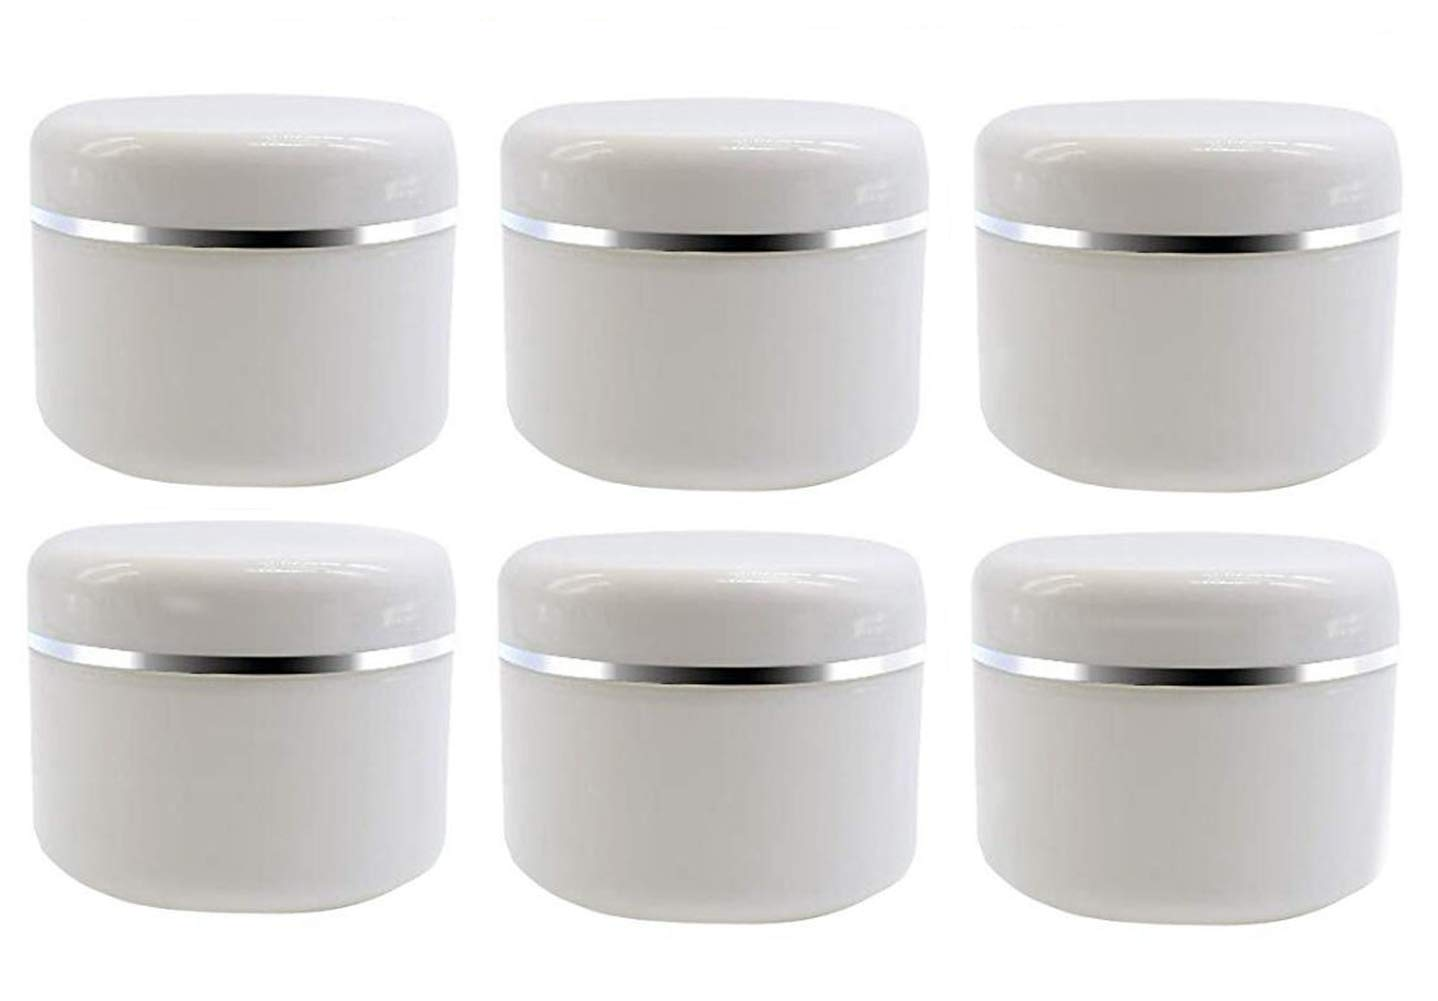 20ml/50ml/100ml White Silver Edge Empty Refillable Cosmetic Plastic Jars with Dome Lid Make Up Face Cream Lip Balm Lotion Storage Container Travel Case Bottle Pot Pack of 6 (20ml/0.67oz)